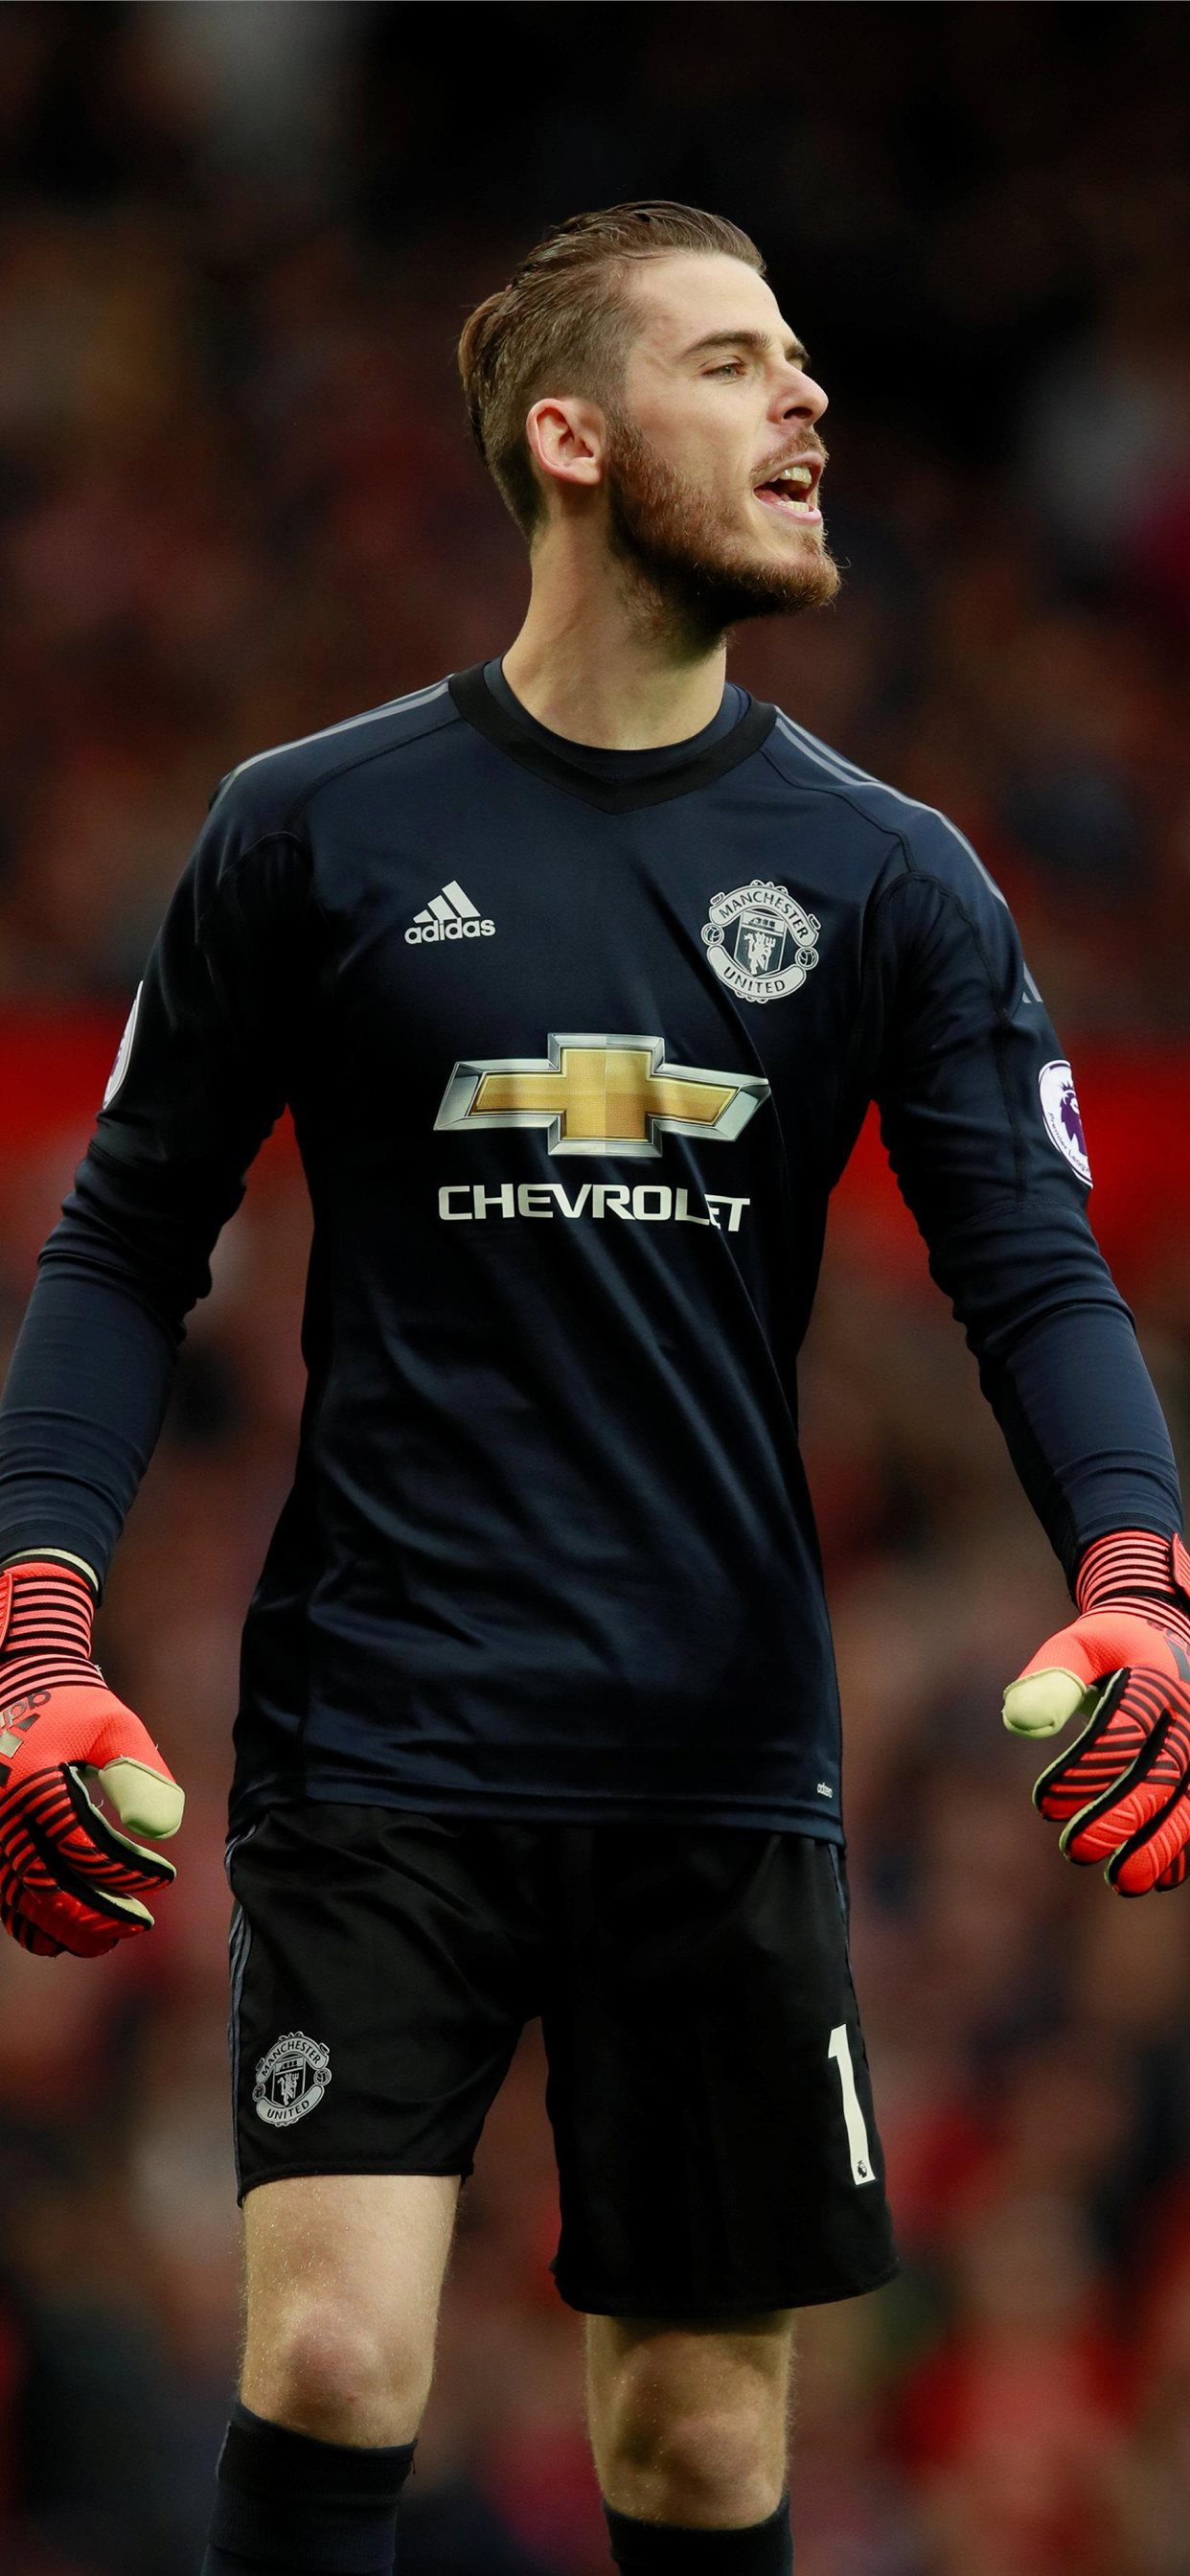 David De Gea New Hairstyle Hd Backgrounds Iphone X Wallpapers Free Download